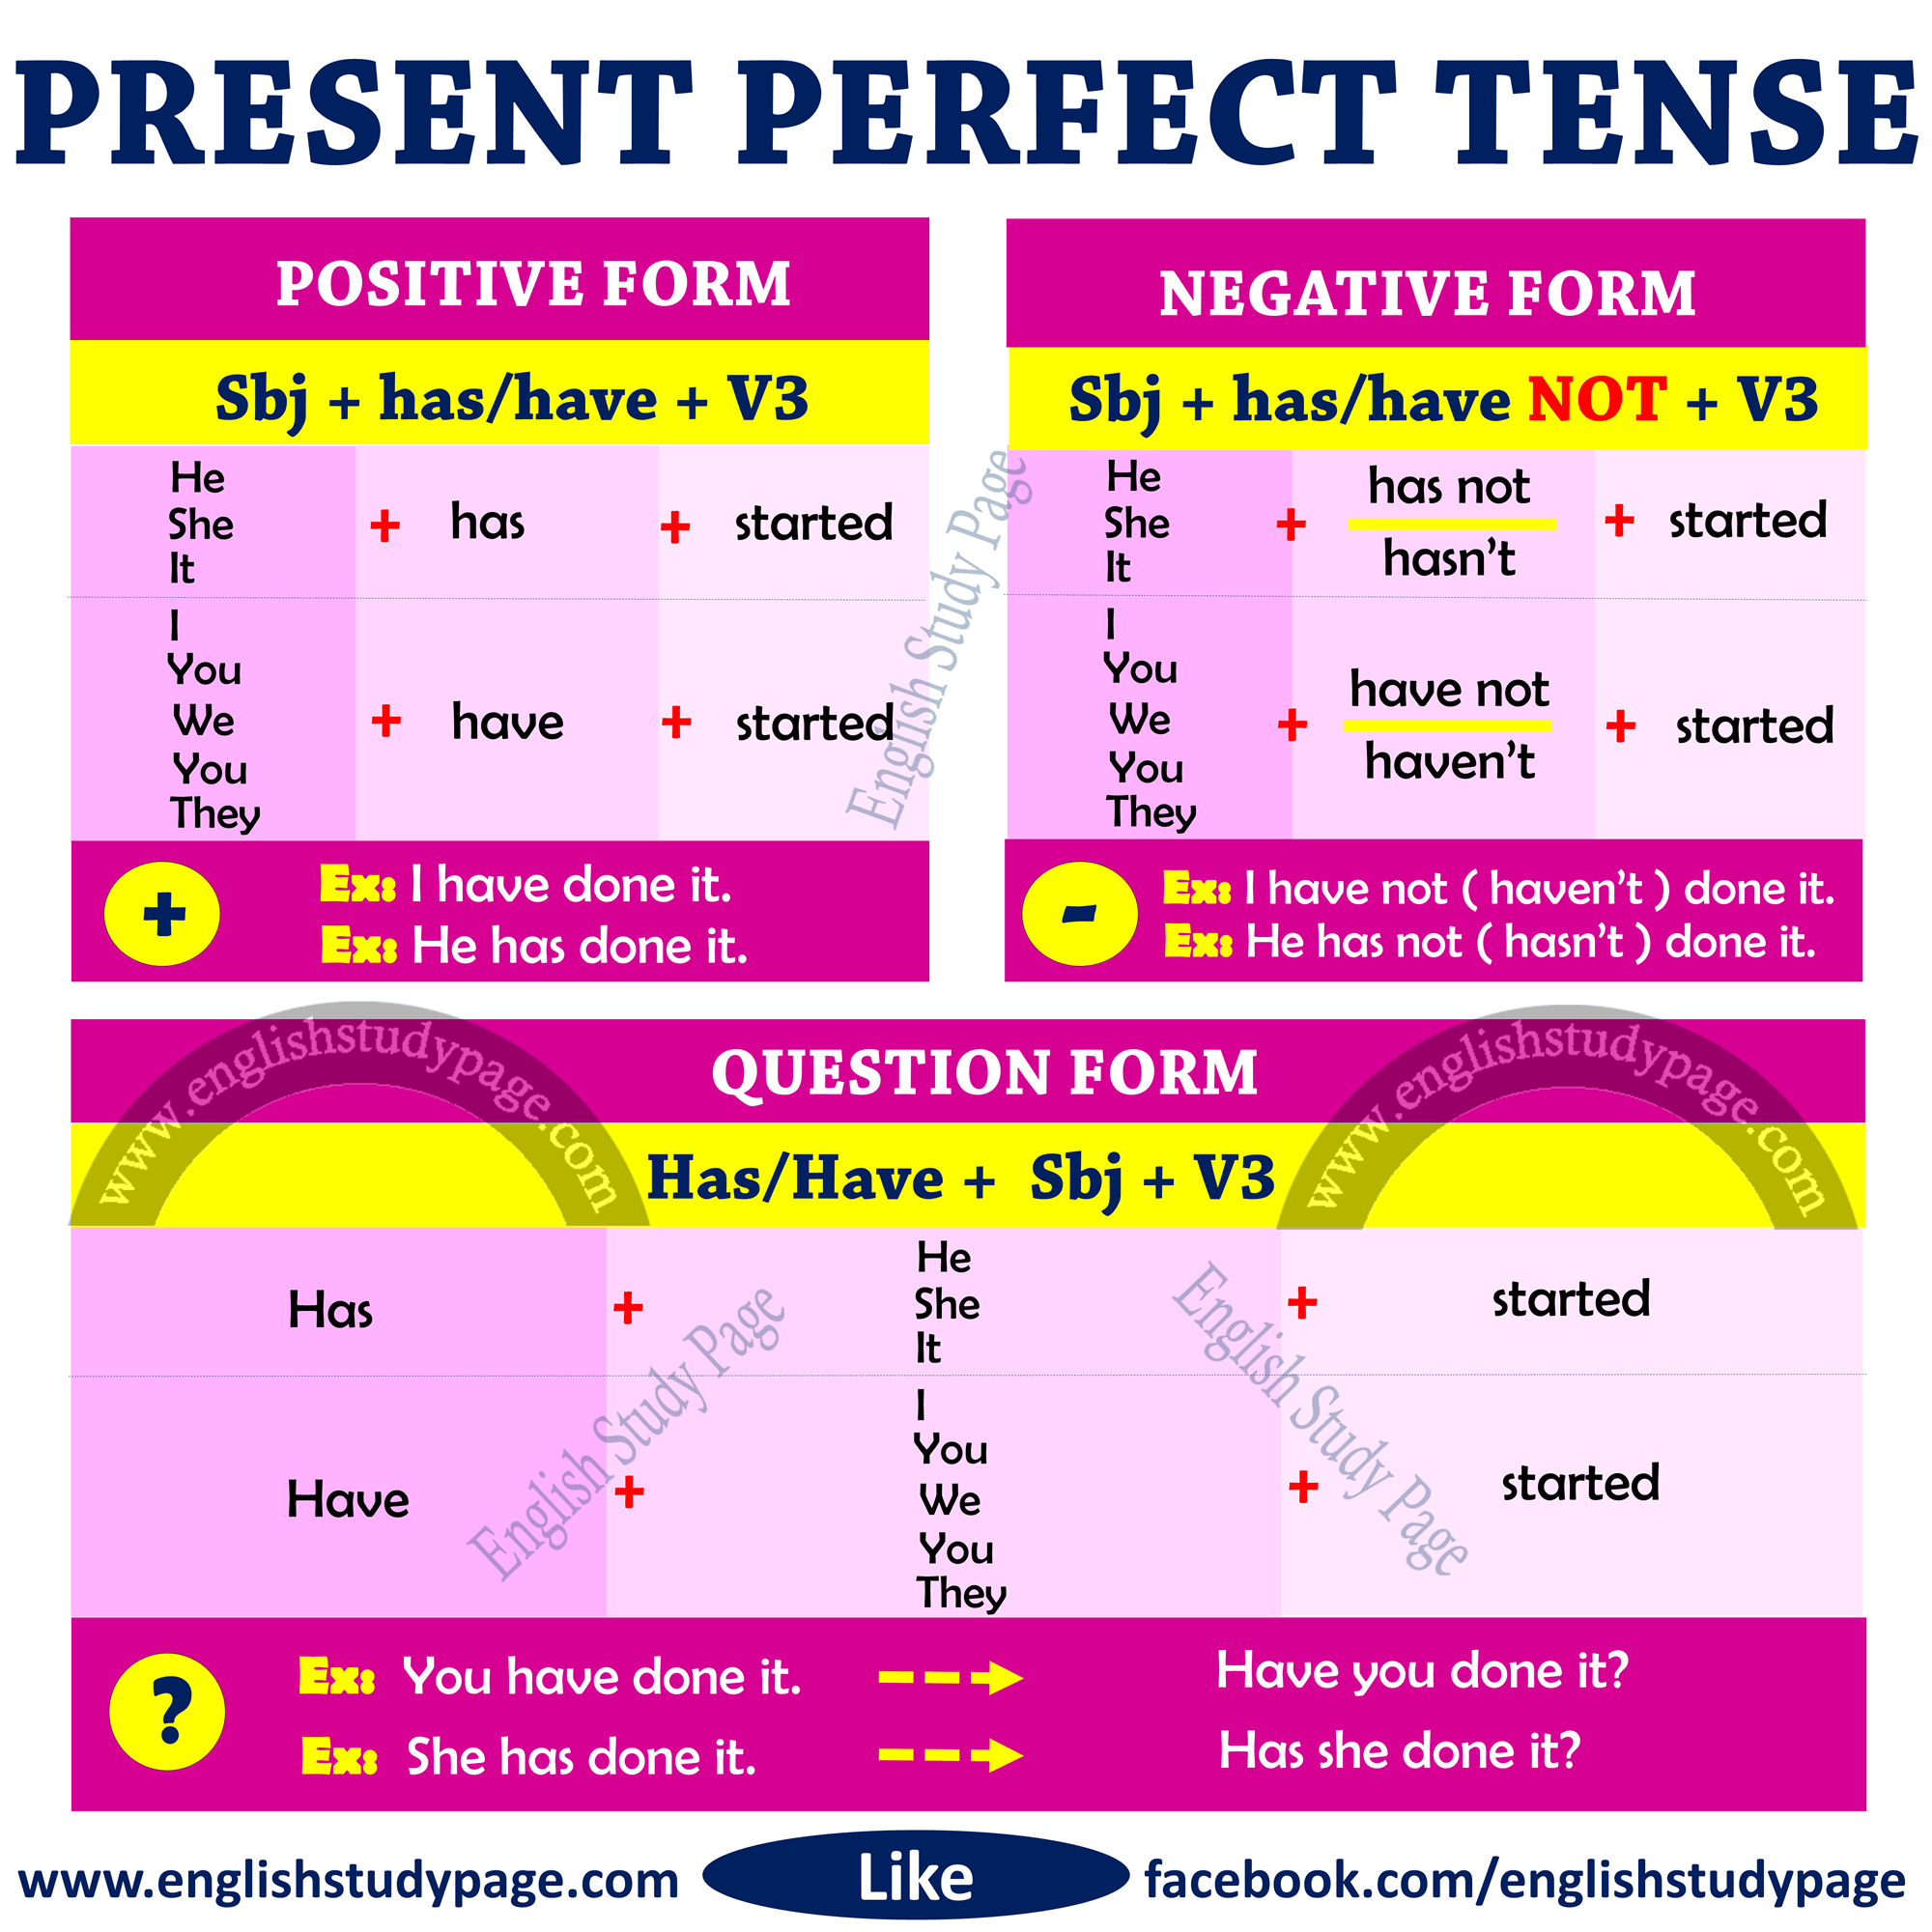 Present Perfect Tense This Post Includes Detailed